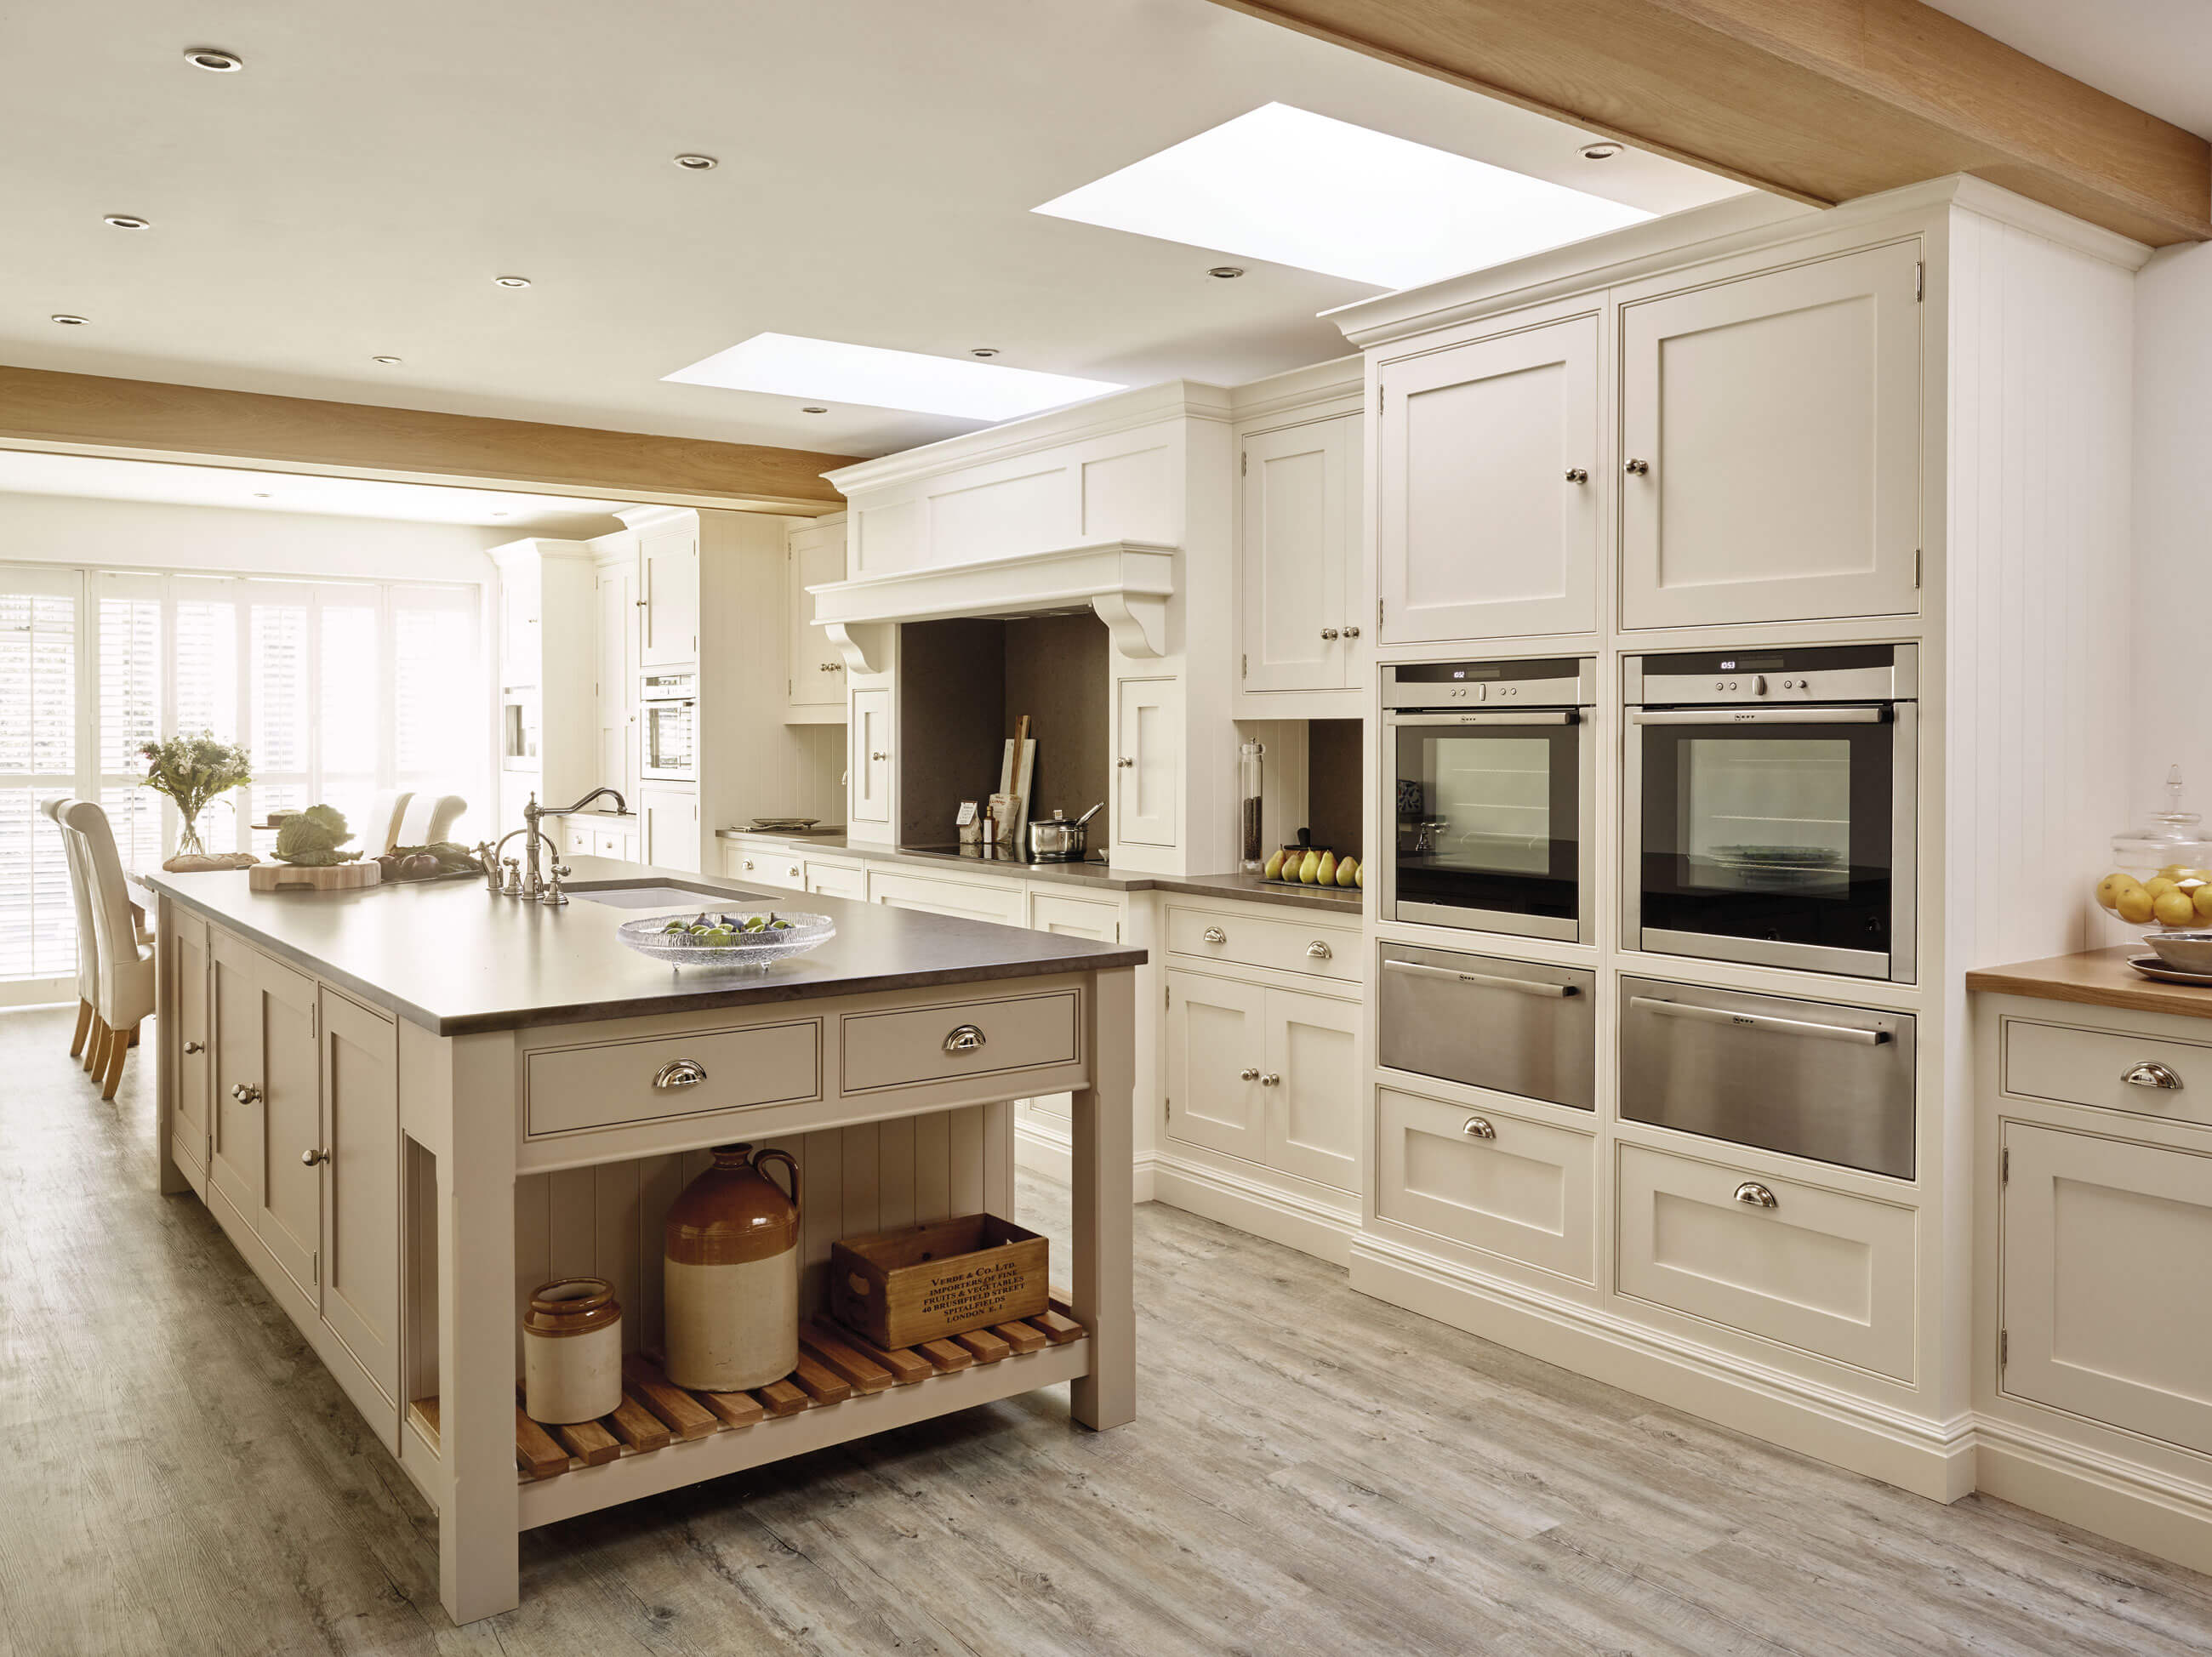 Country kitchen design tom howley - Country style kitchen cabinets design ...